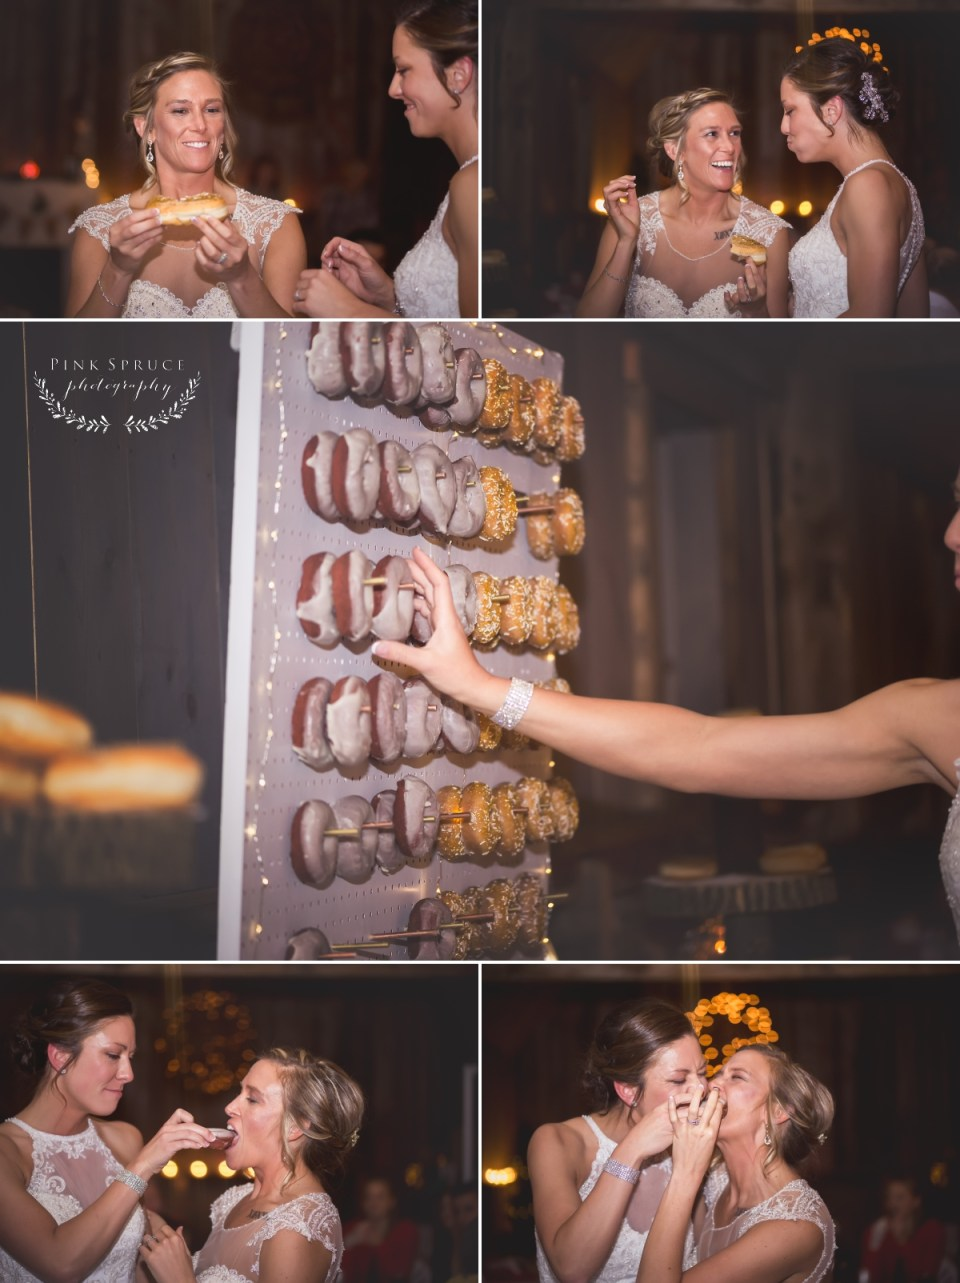 Rustic Winter Wedding at Pedretti's Party Barn, Viroqua, WI | Photography by: Pink Spruce Photography www.pinksprucephotography.com | Lesbian Wedding, Same Sex Wedding, Donut Bar, Cake Cutting, WIsconsin Wedding